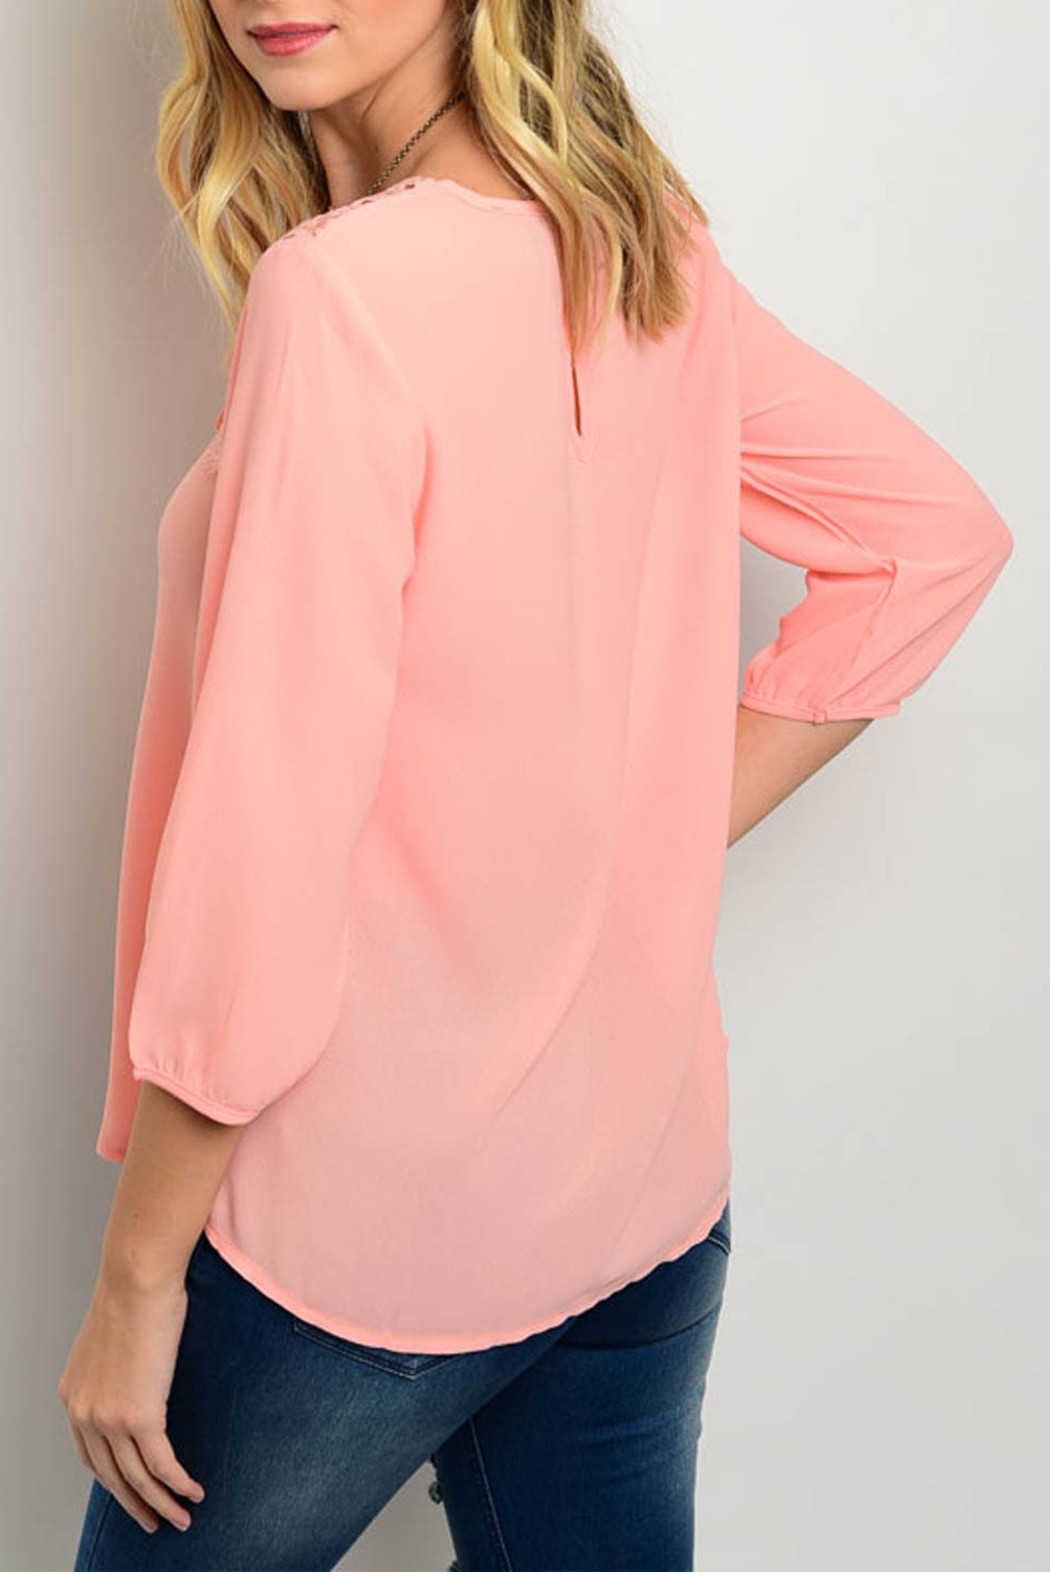 Roly Poly Salmon Crochet Blouse - Front Full Image